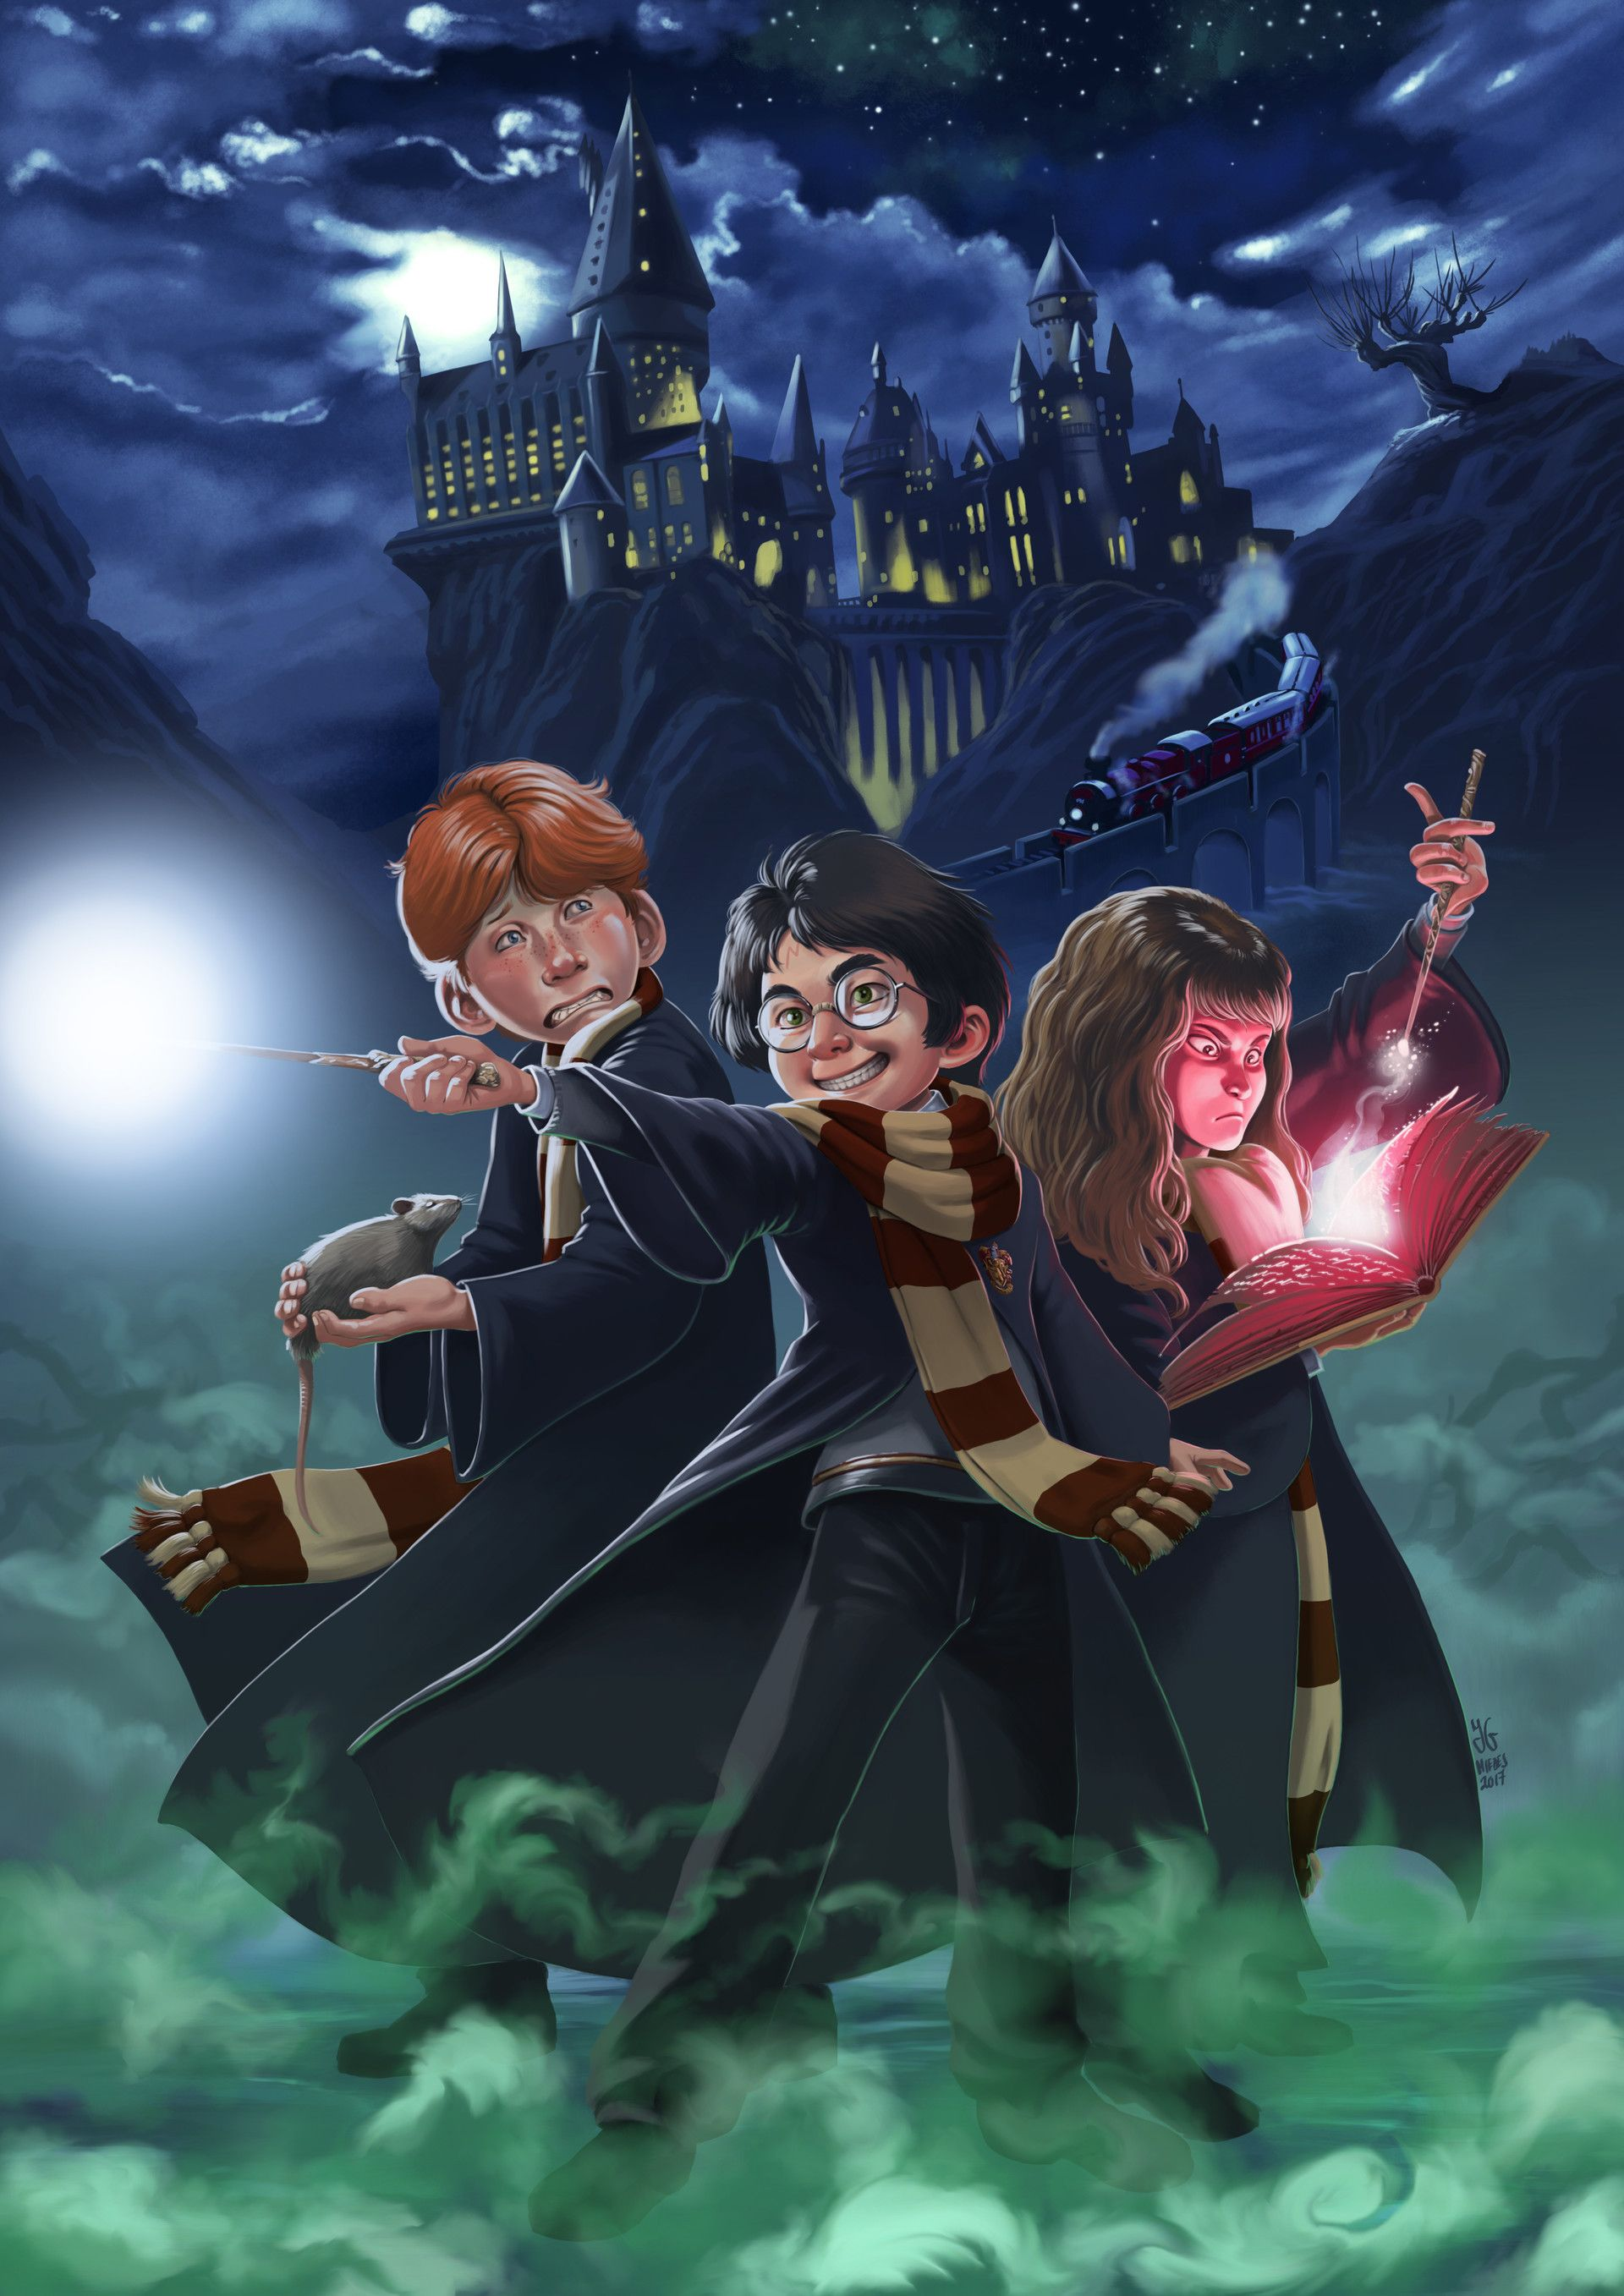 Pin By Nicusor Cozac On Harry Potter Harry Potter Illustrations Harry Potter Images Harry Potter Artwork